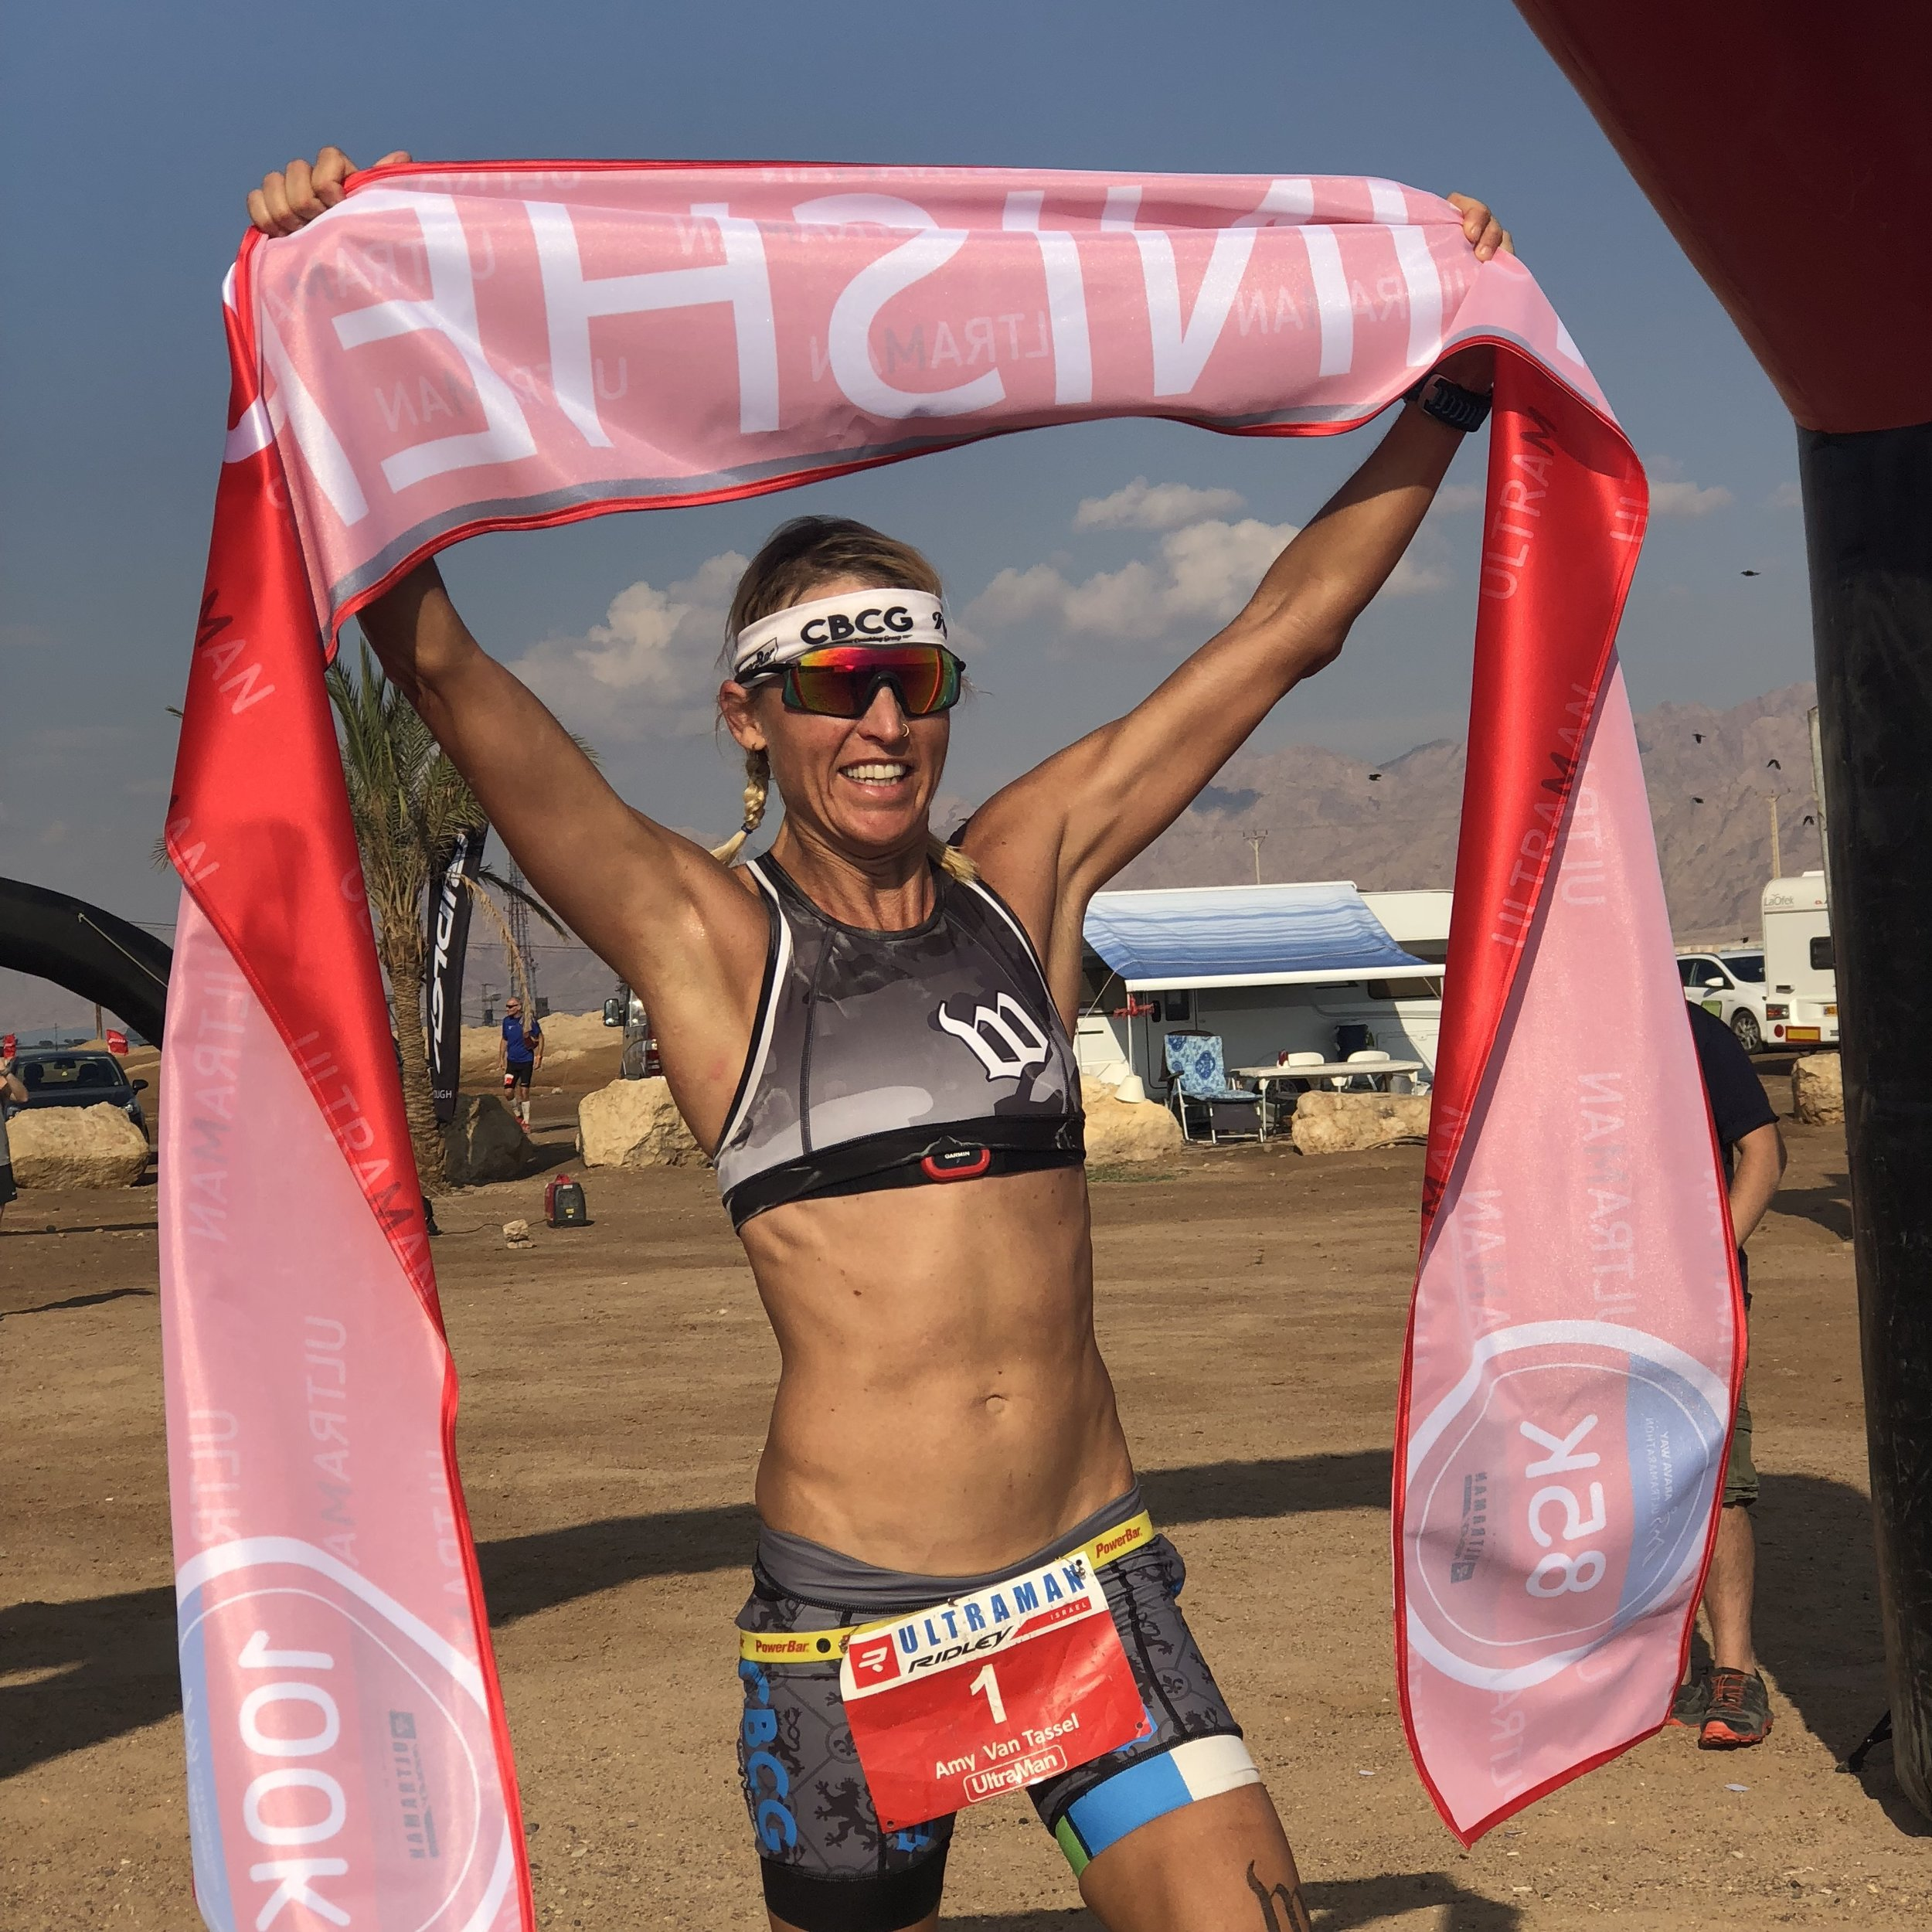 Coach_Terry_Wilson_Pursuit_of_The_Perfect_Race_Ultram_Isereal_Amy_VT_Overall_Winer_Finish.JPG